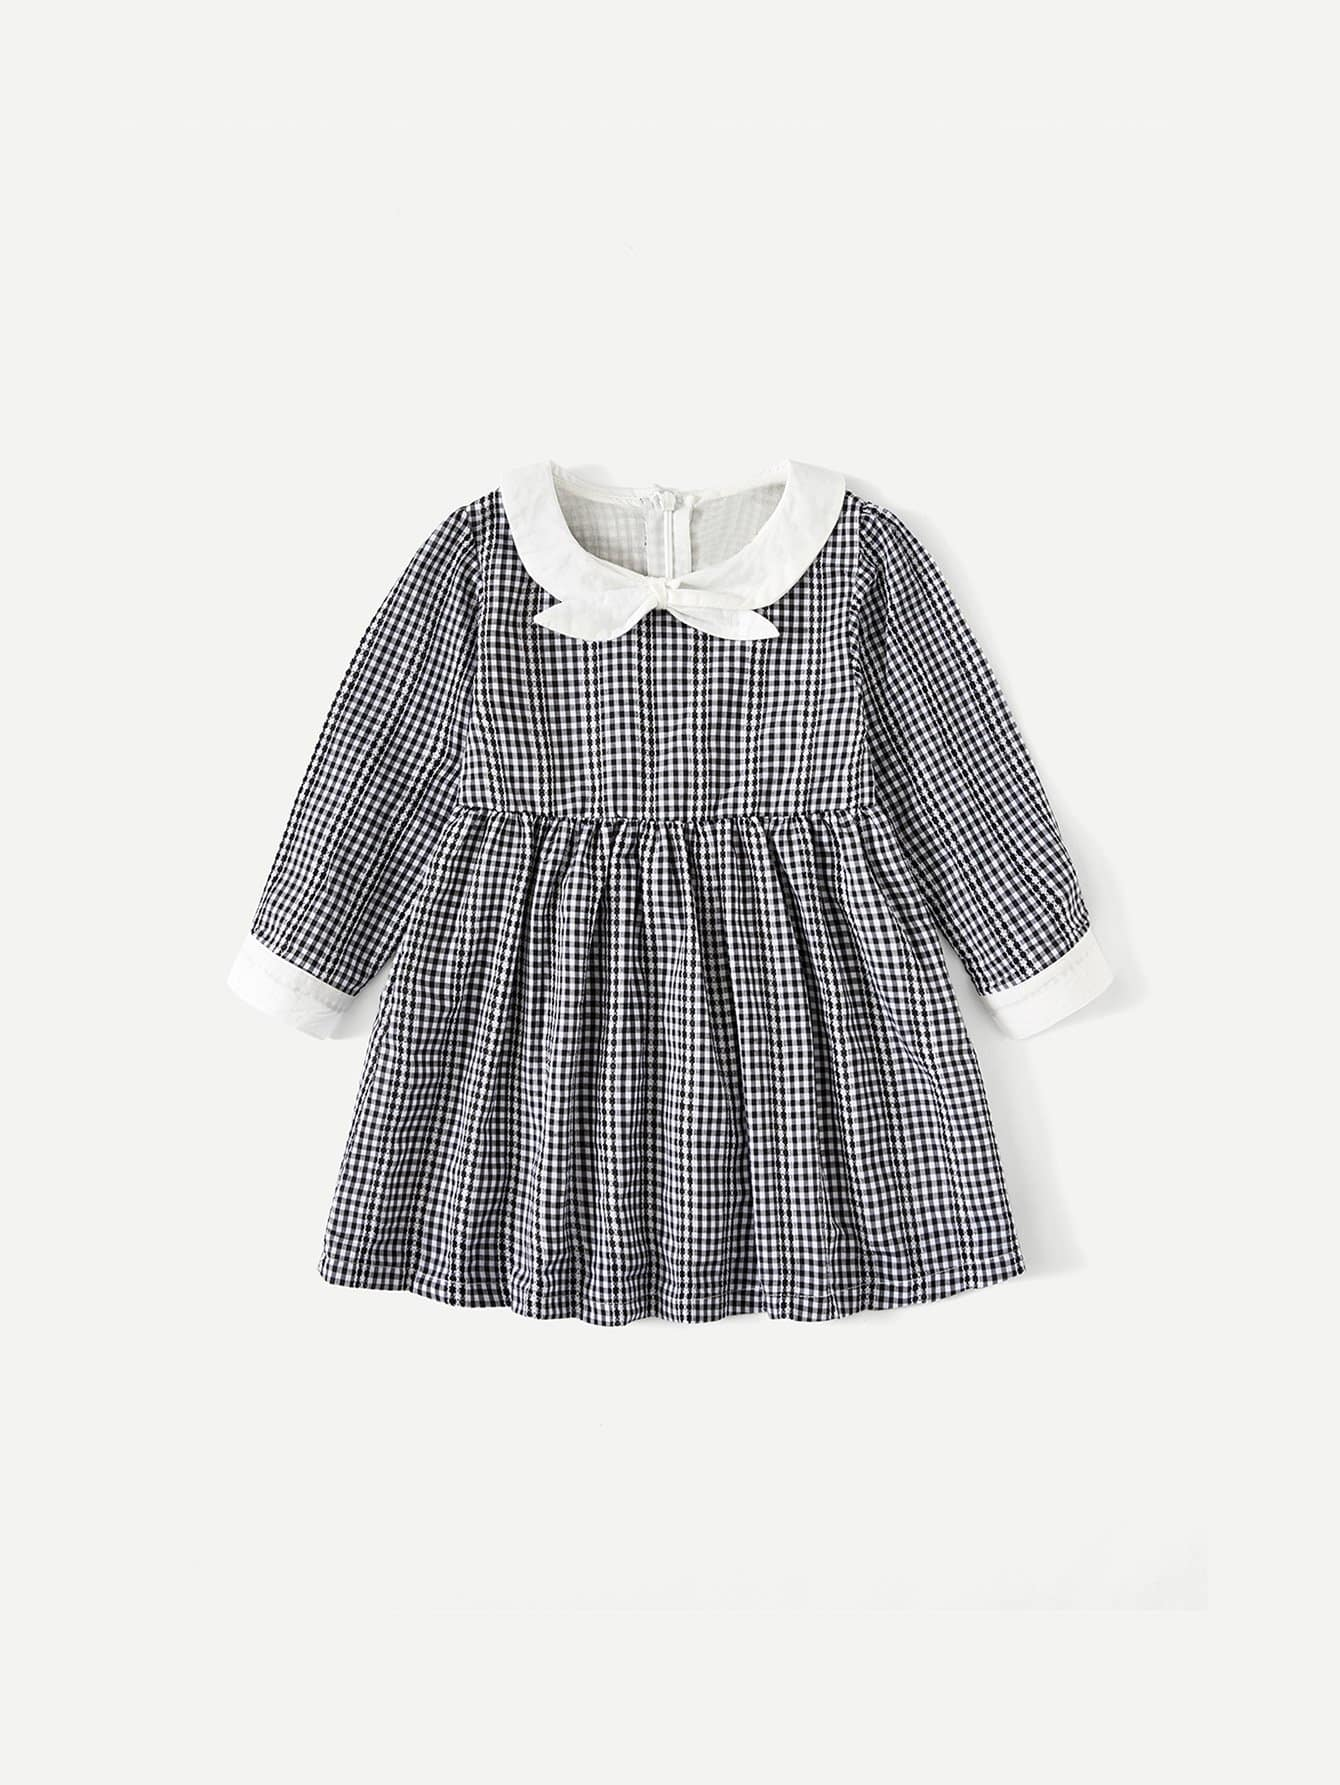 Girls Contrast Trim Gingham Dress